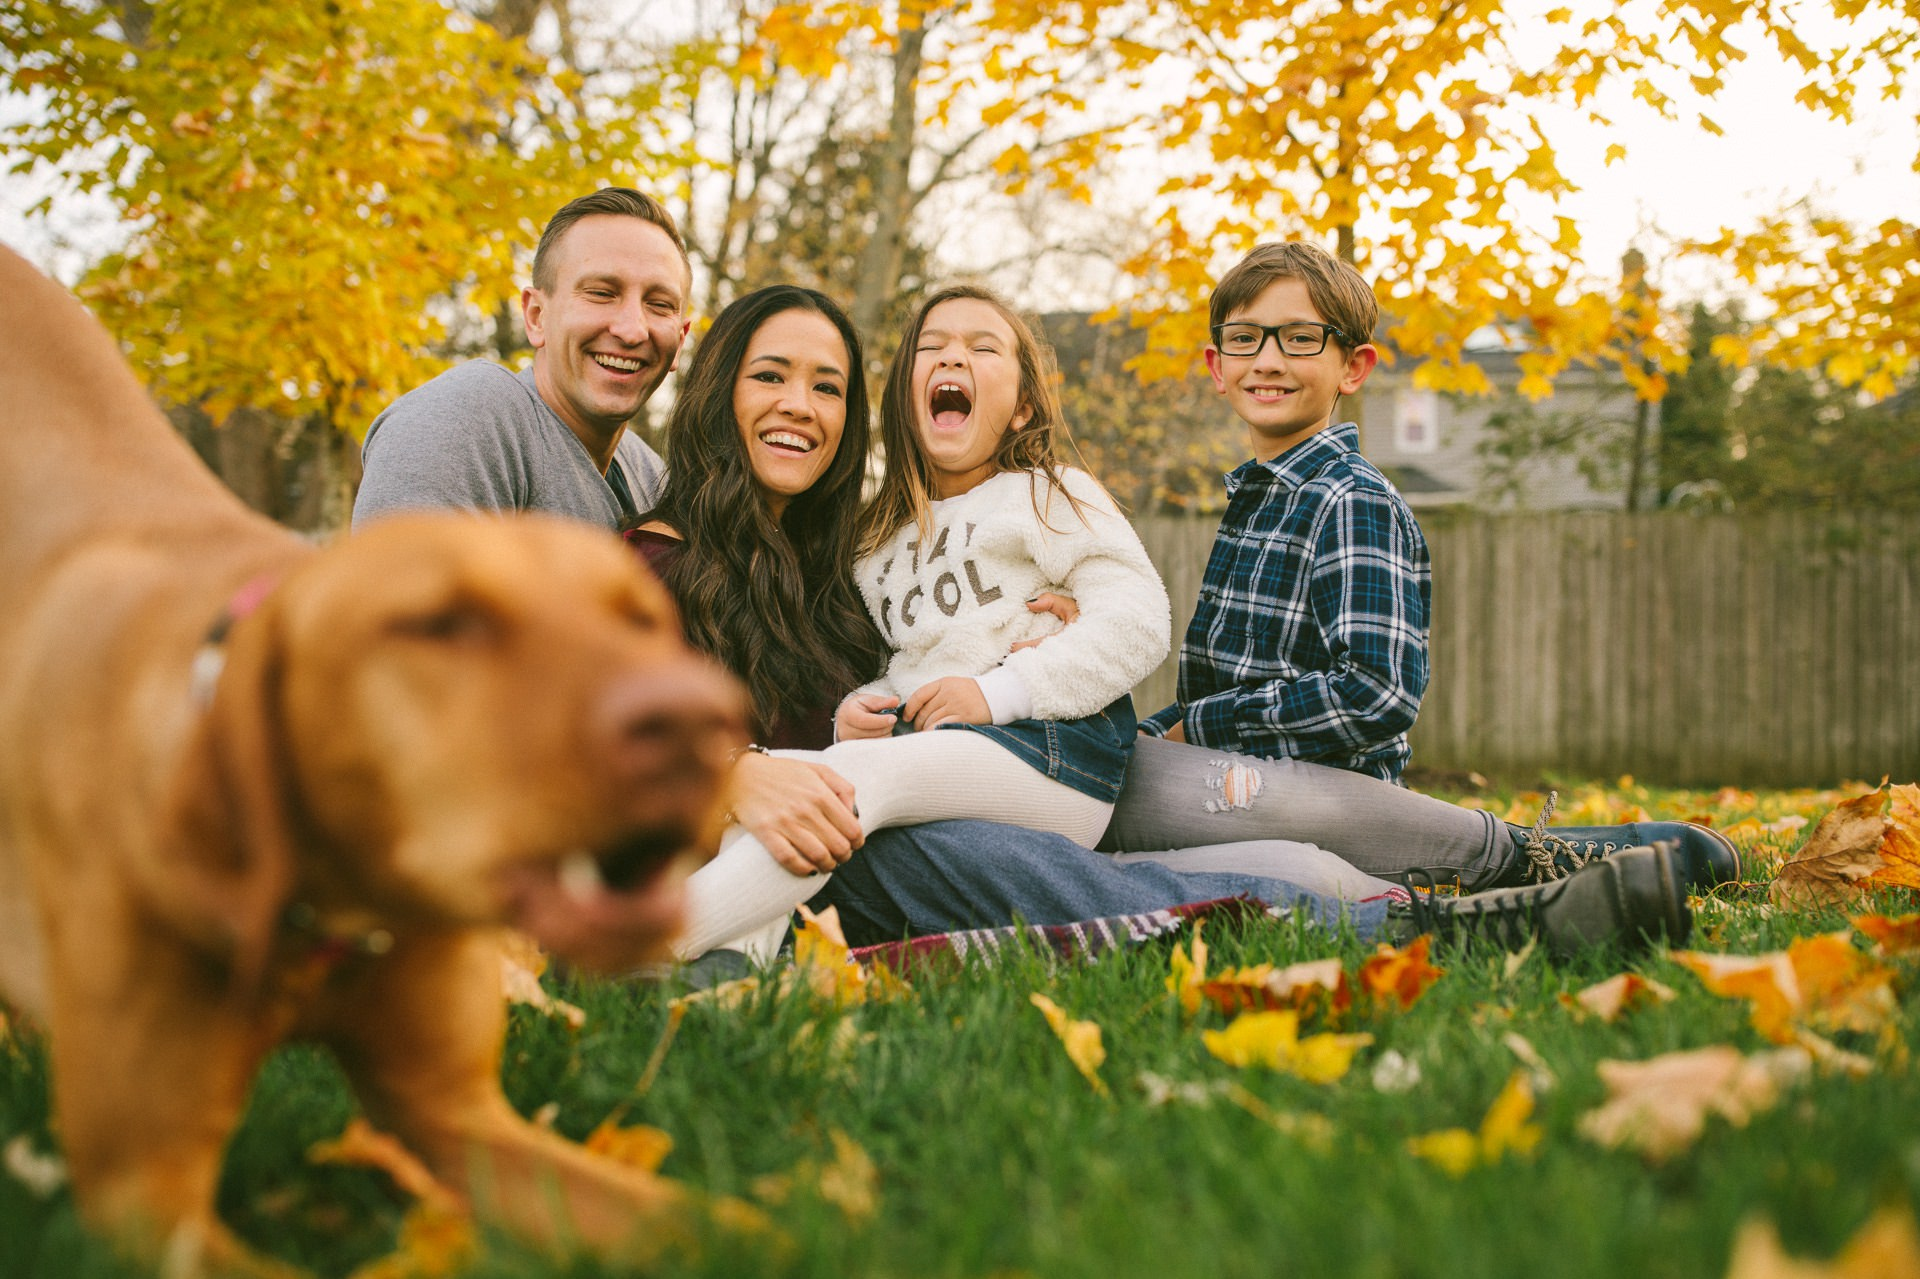 Westlake Ohio Family Portrait Photographer The Roths 21.jpg